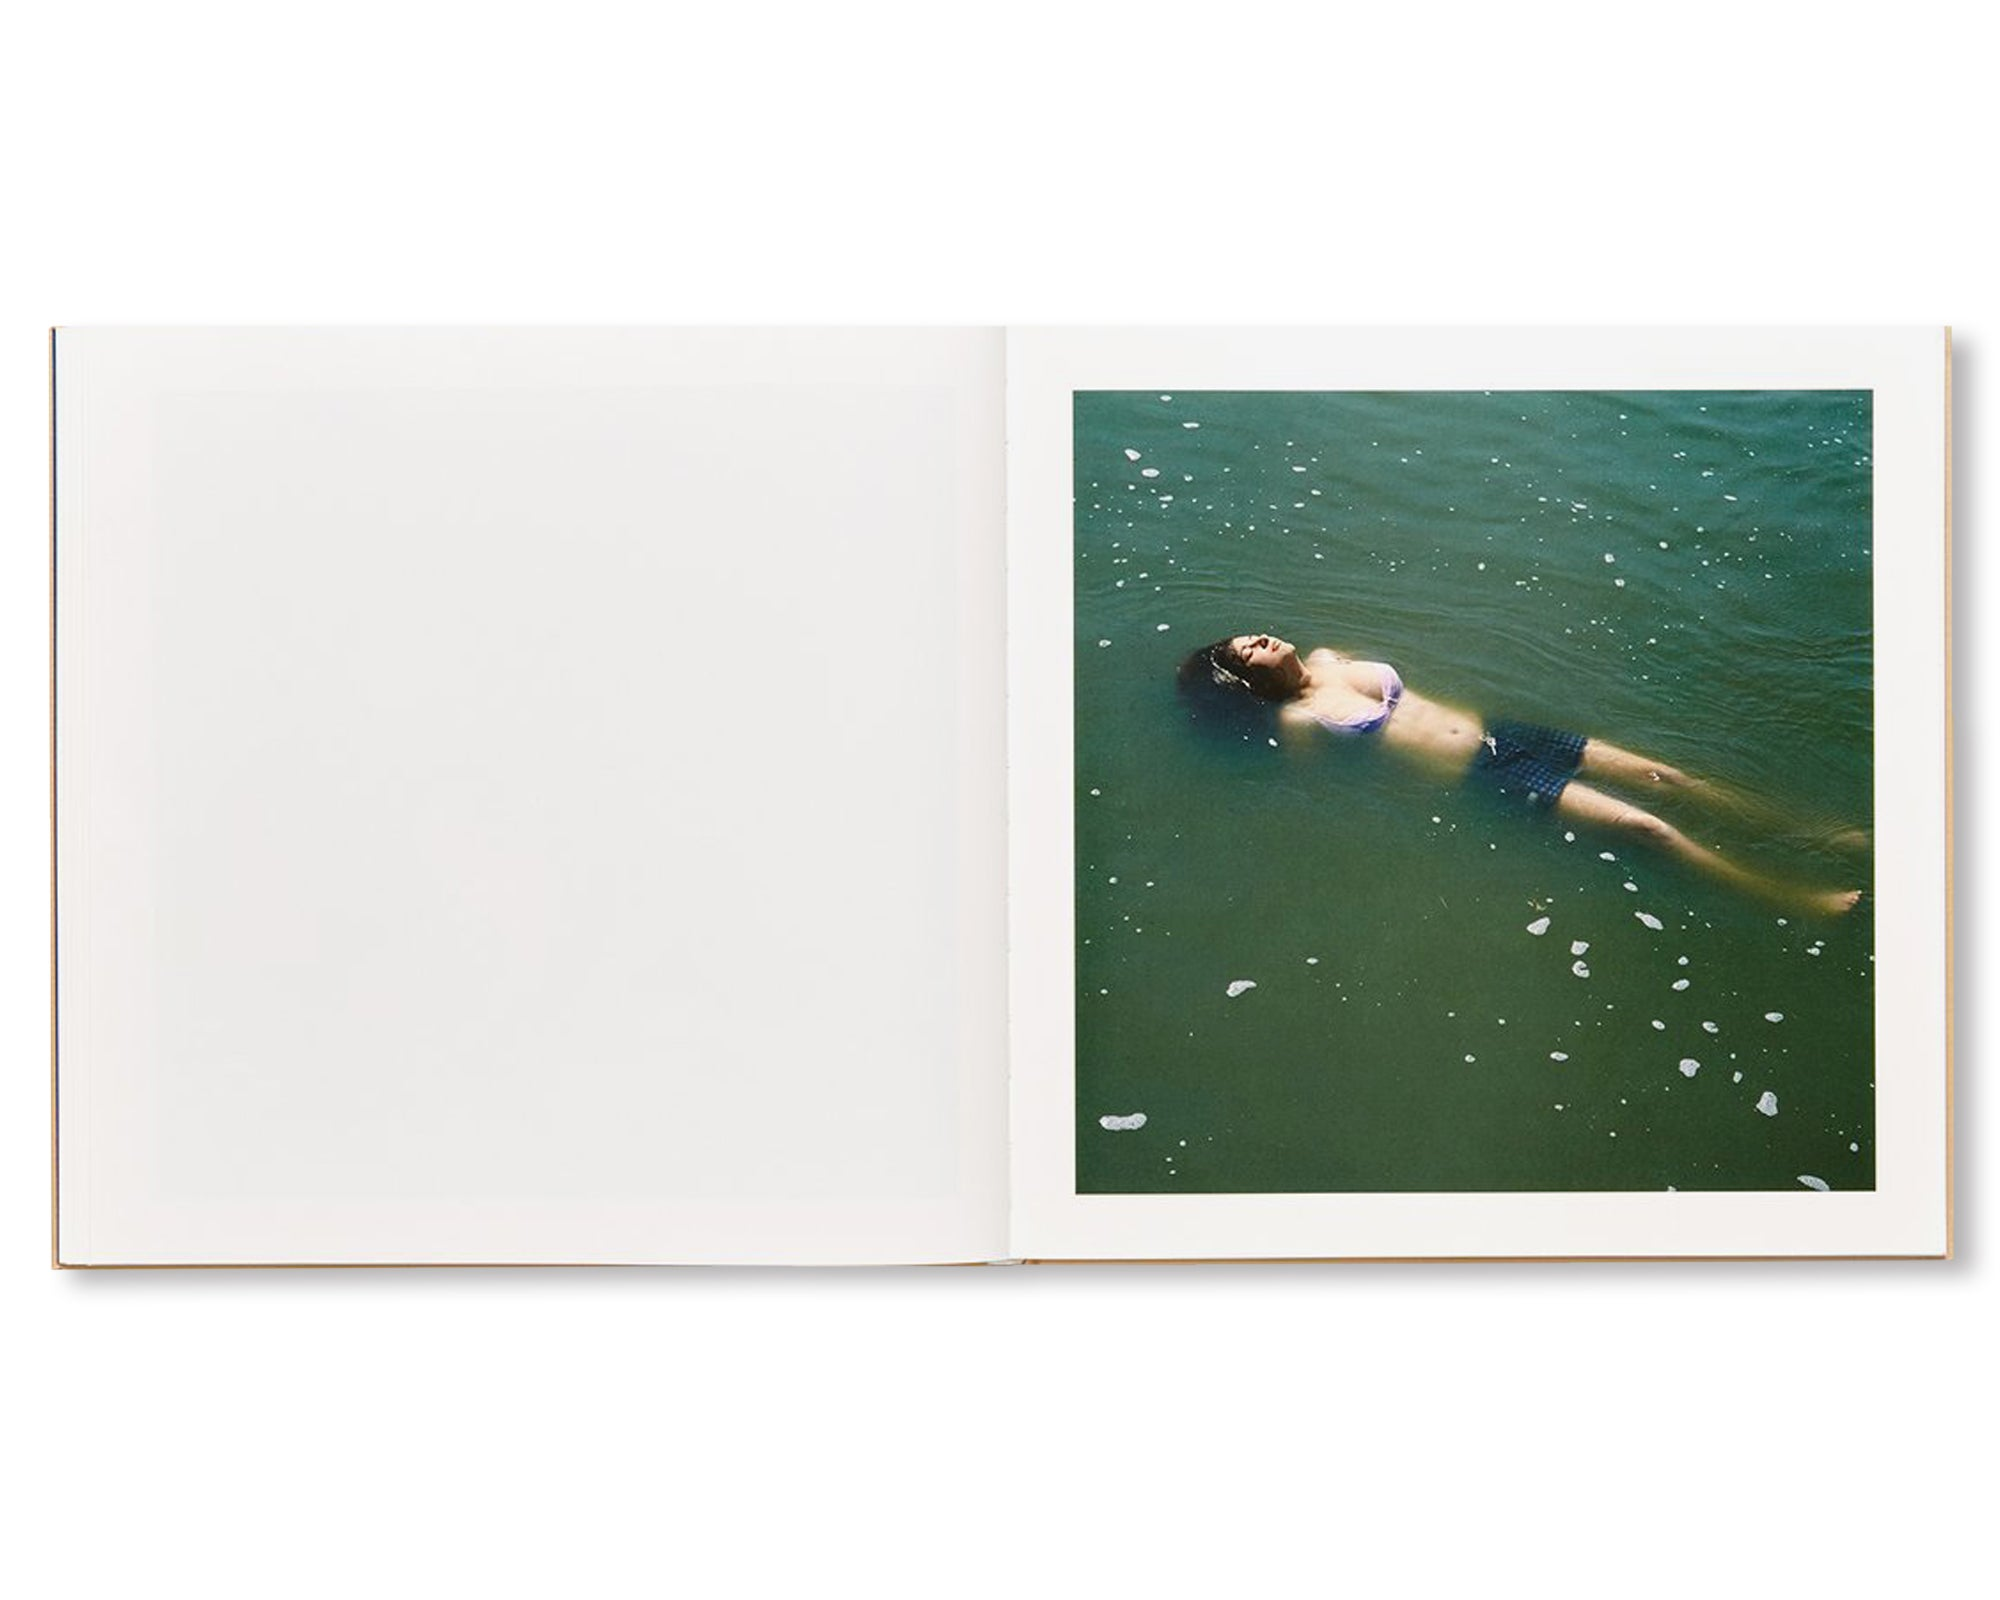 THE ADVENTURES OF GUILLE AND BELINDA AND THE ILLUSION OF AN EVERLASTING SUMMER by Alessandra Sanguinetti [SIGNED]